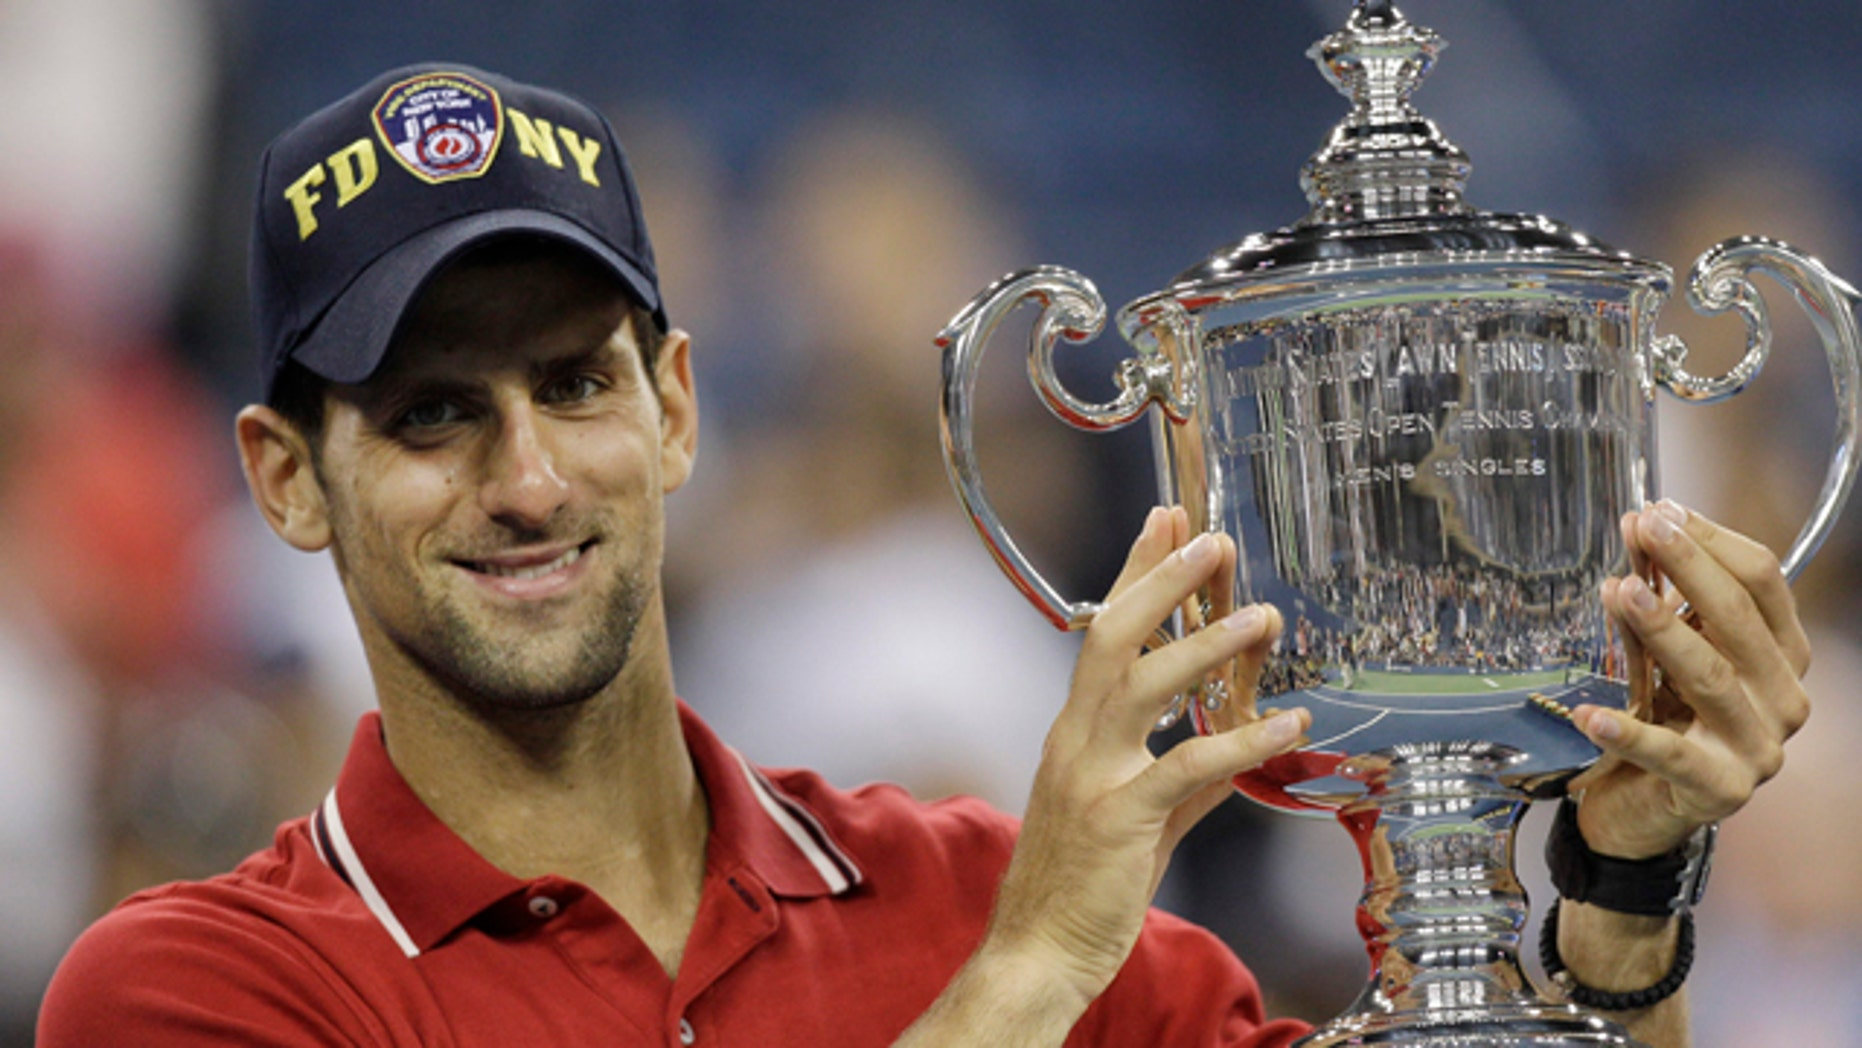 Novak Djokovic of Serbia poses with the trophy after winning the men's championship match against Rafael Nadal of Spain at the U.S. Open tennis tournament in New York, Monday, Sept. 12, 2011. (AP Photo/Matt Slocum)